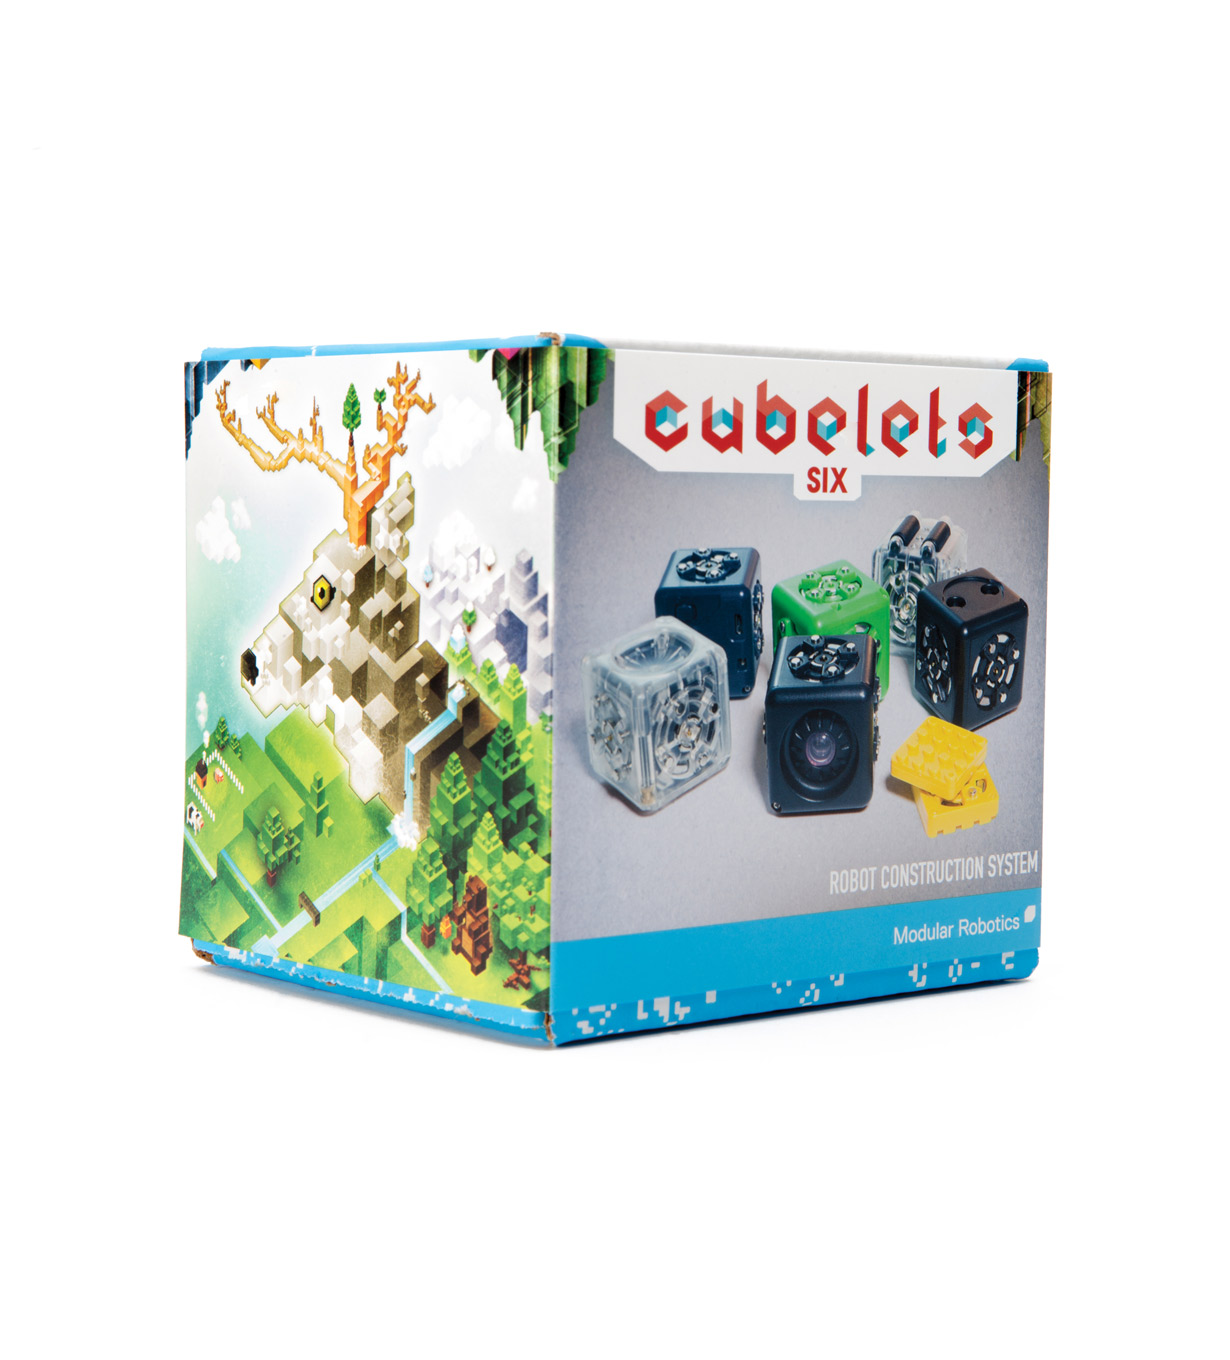 Cubelets 6 Pack